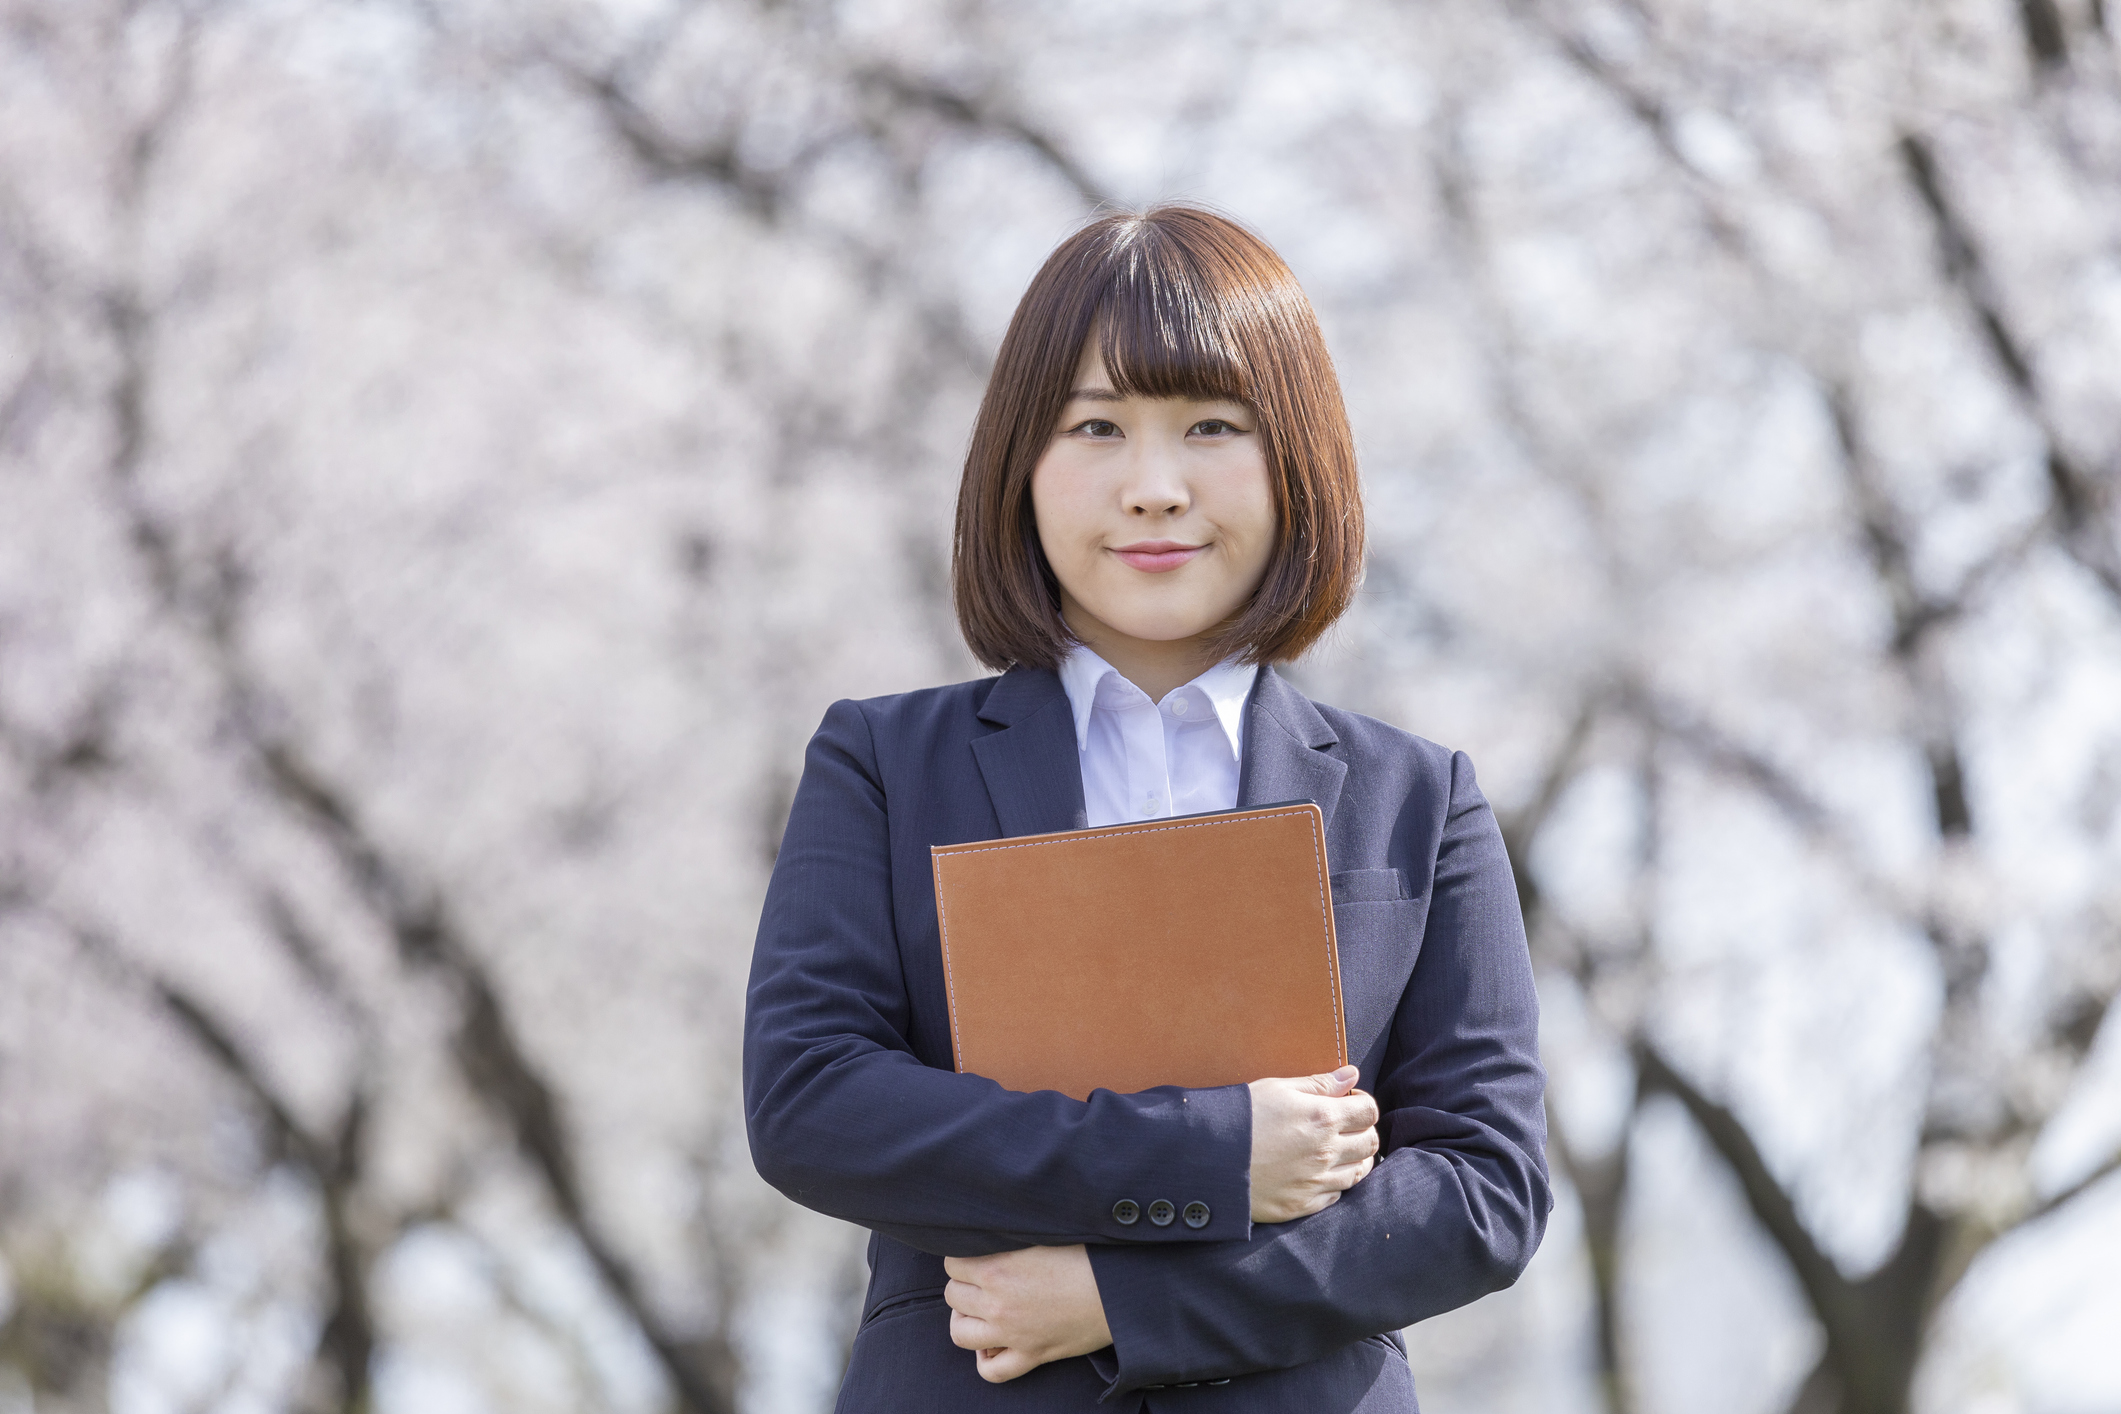 Woman in suit and cherry blossom